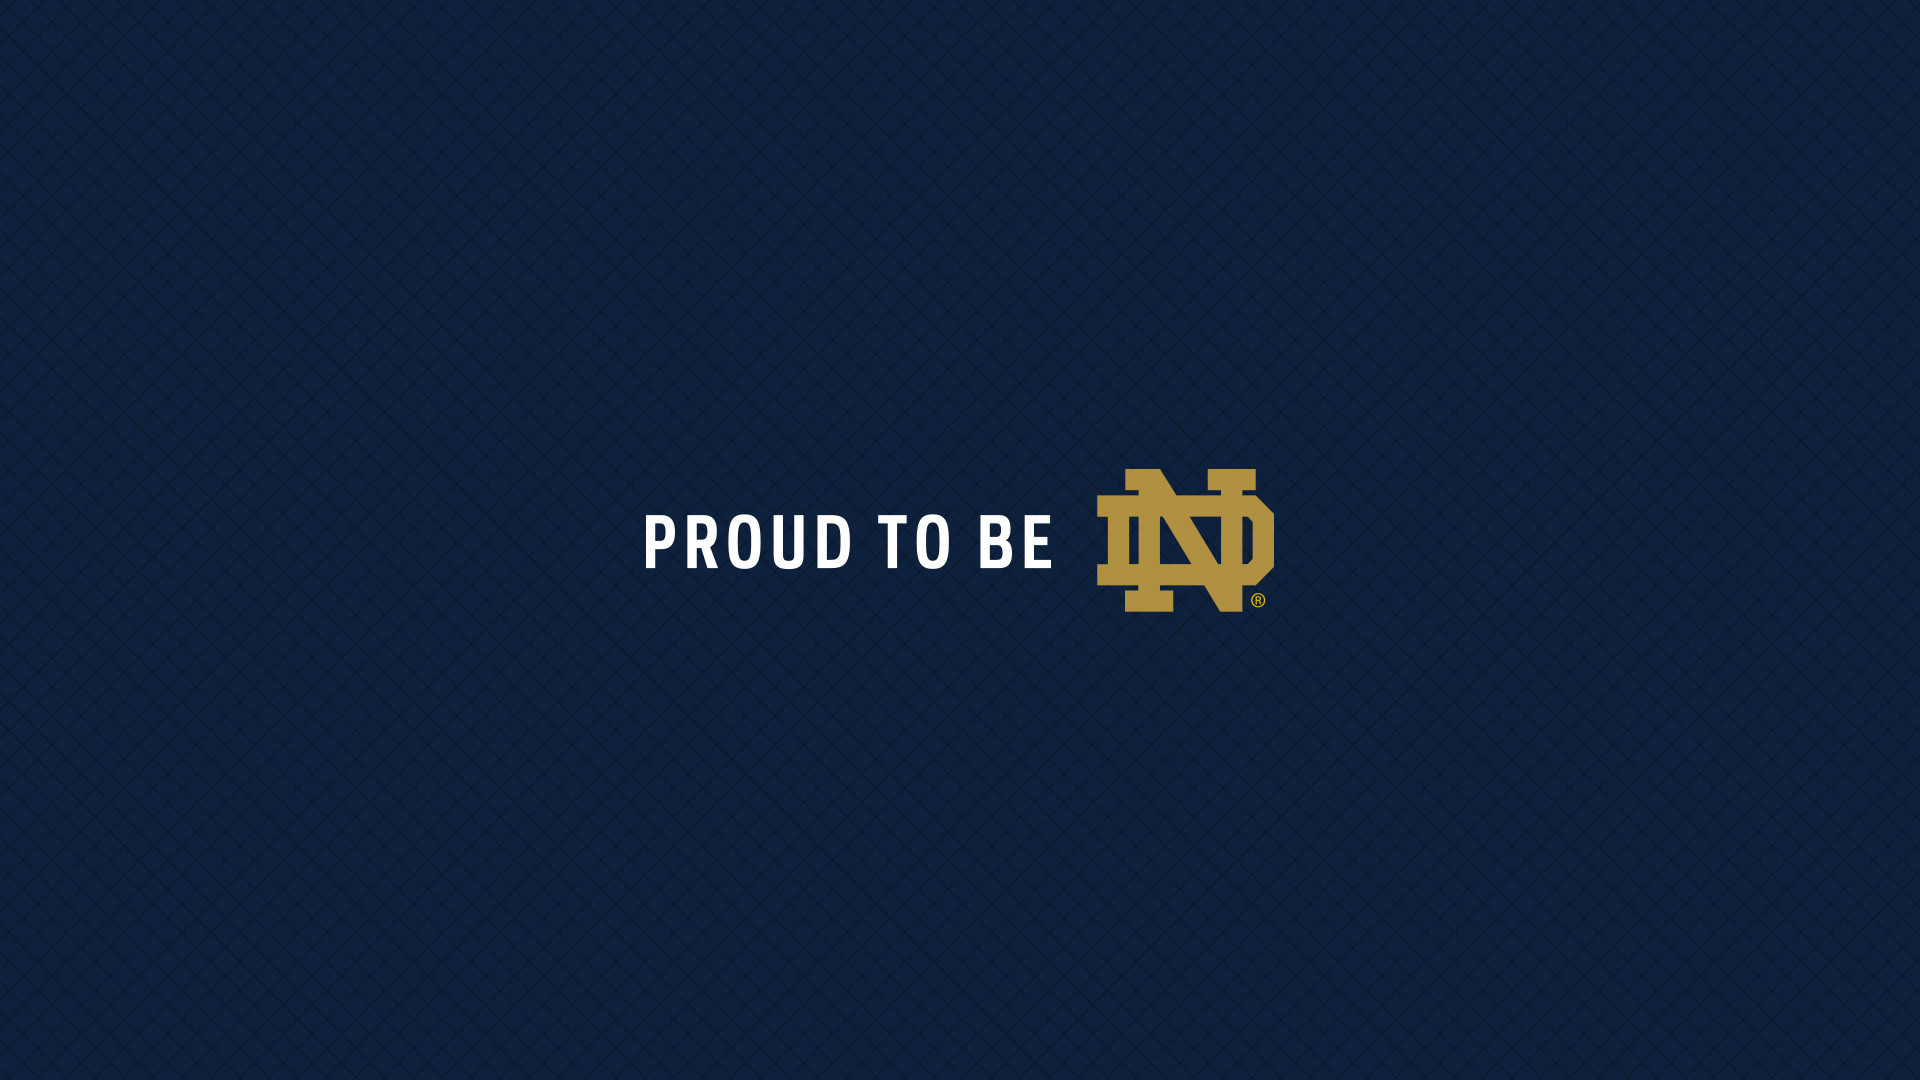 Wallpapers // Proud to Be ND // University of Notre Dame